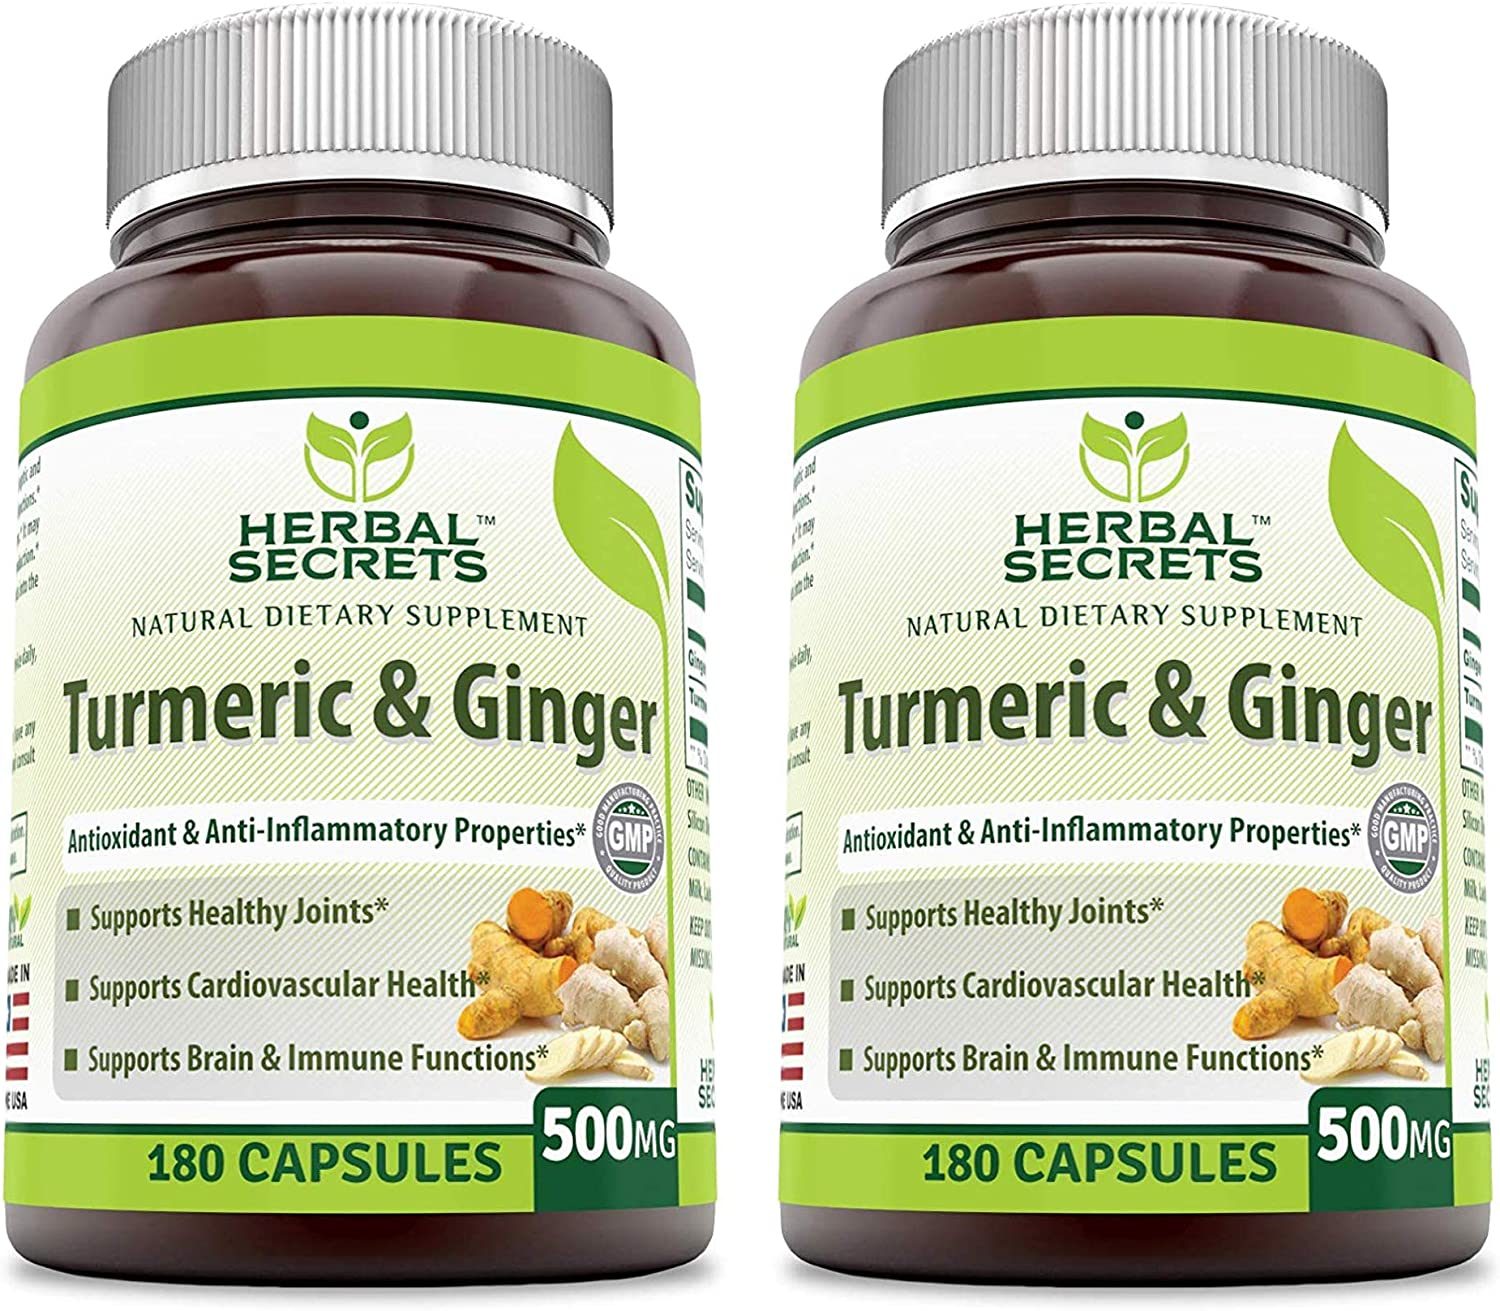 Herbal Secrets Turmeric Ginger 500 Mg Pack of 2-360 Capsules Total